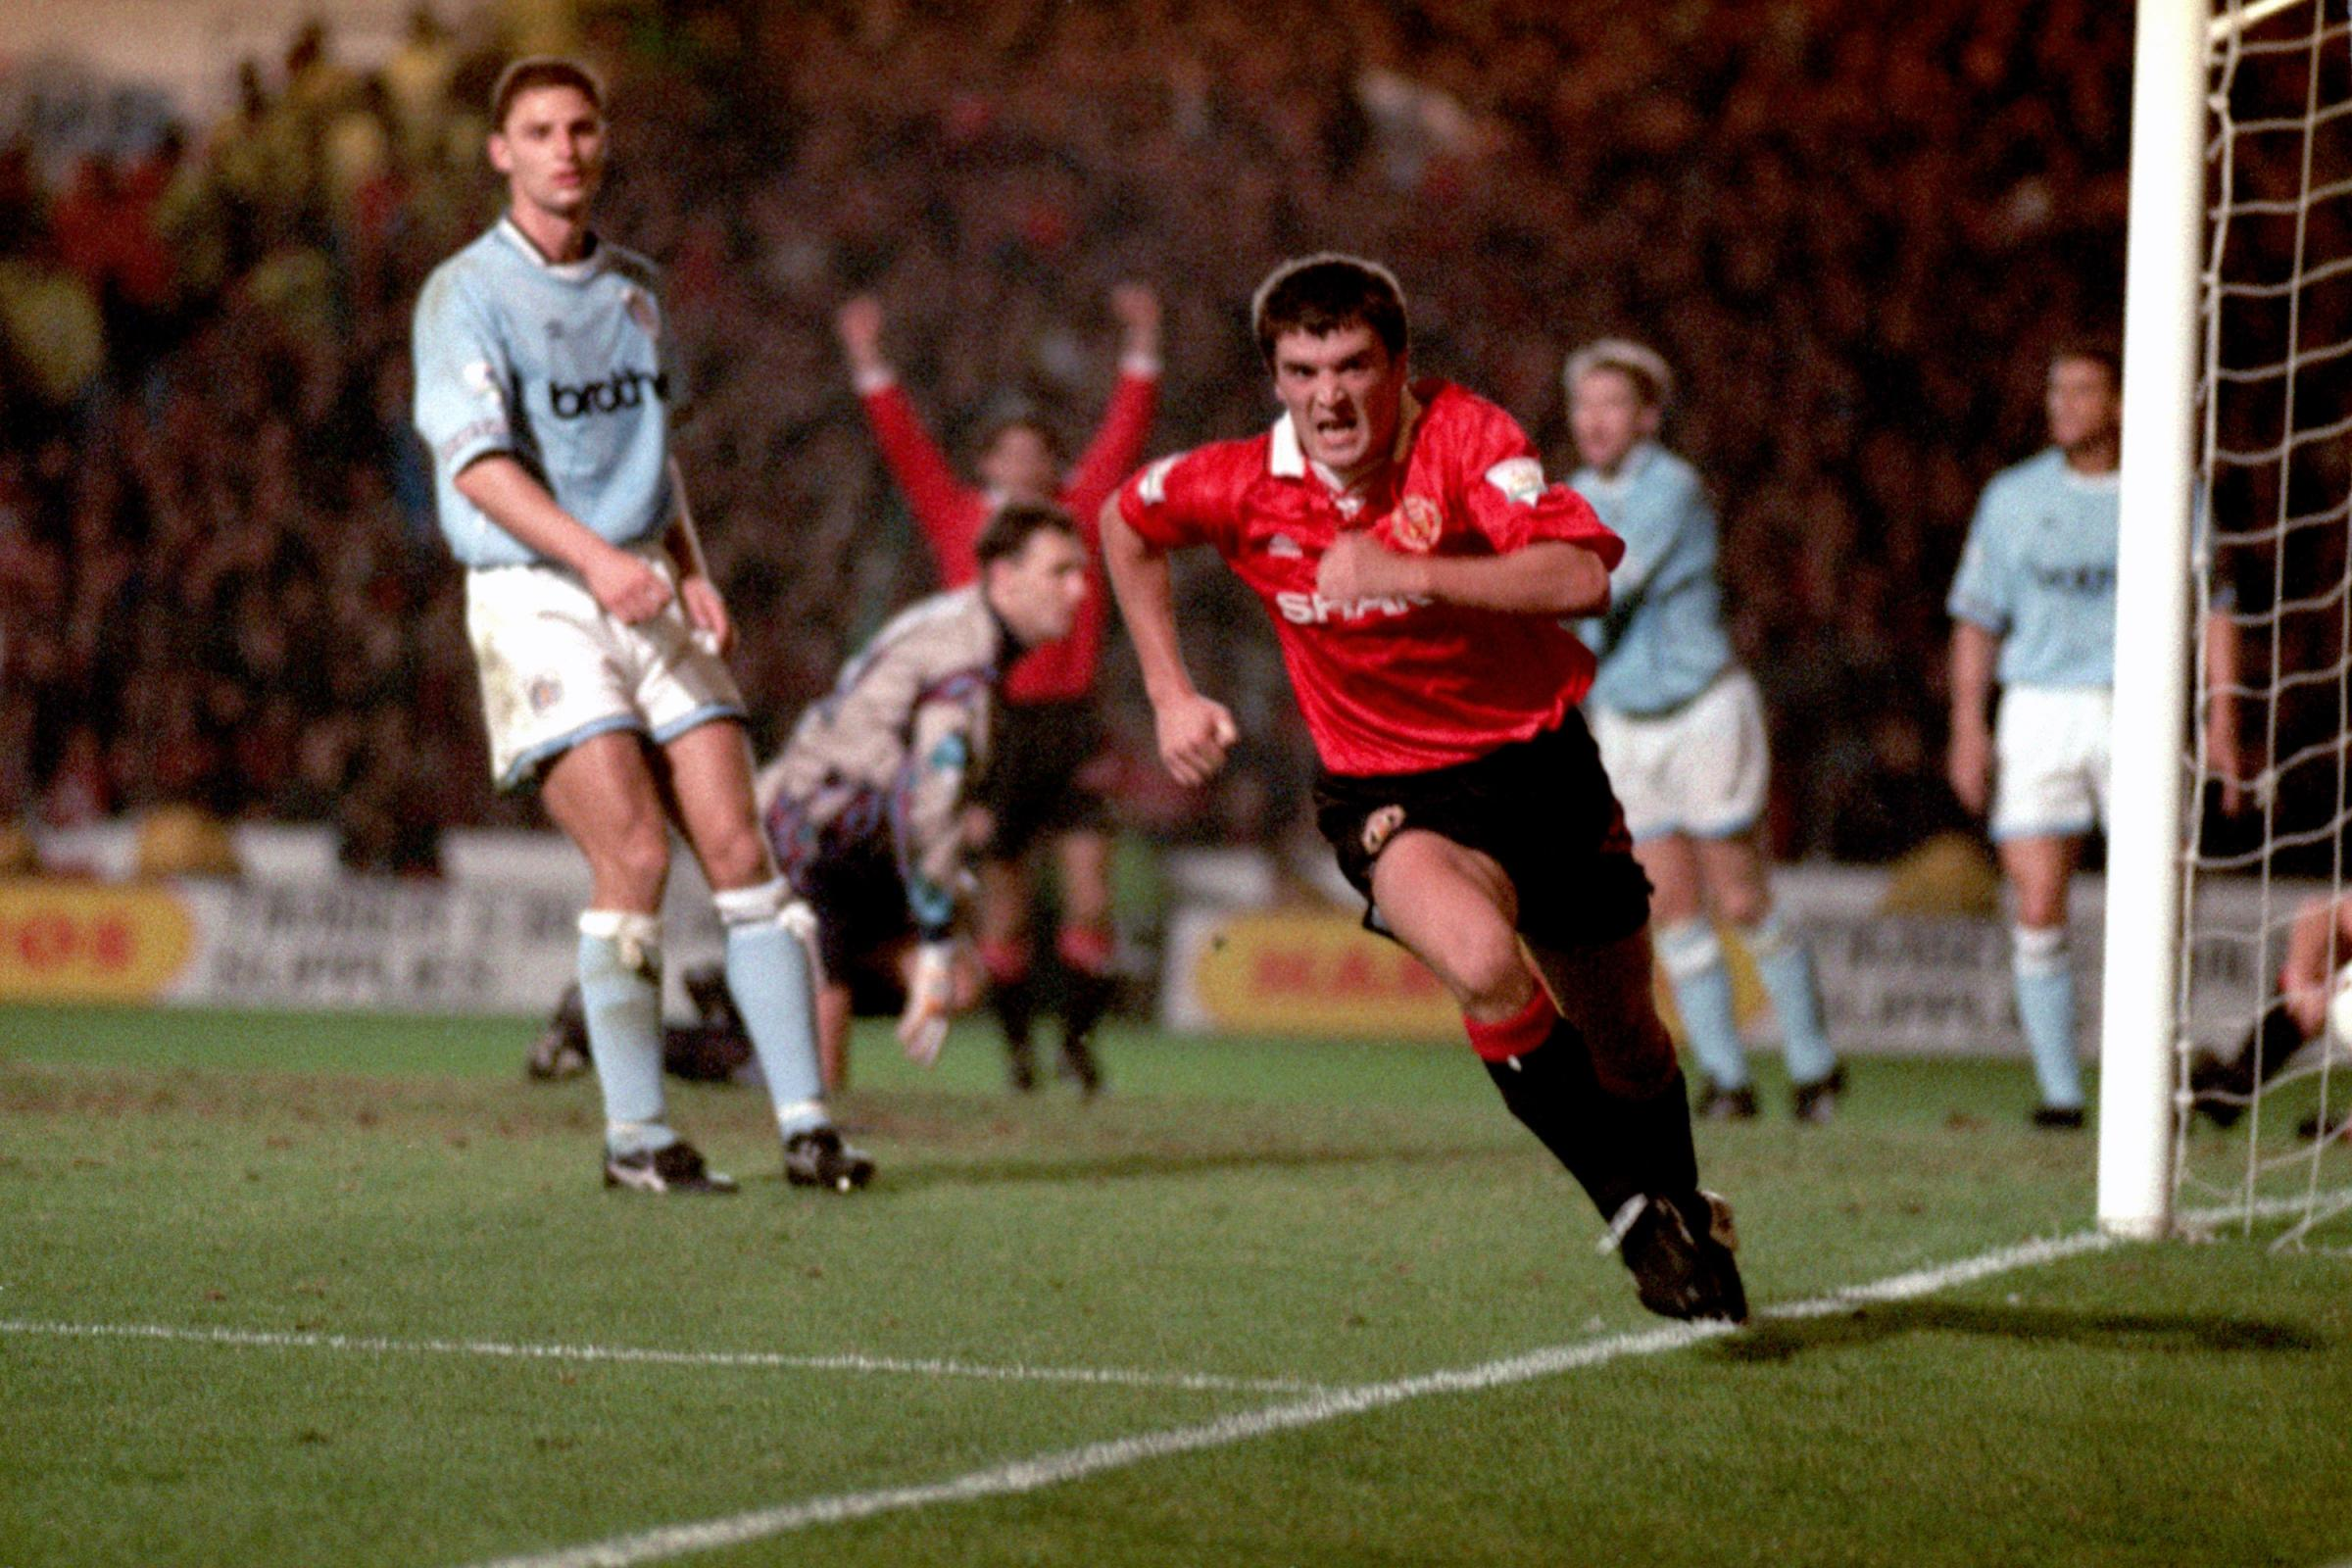 Roy Keane celebrates after scoring for Manchester United in 1993 (John Childs/EMPICS Sport)